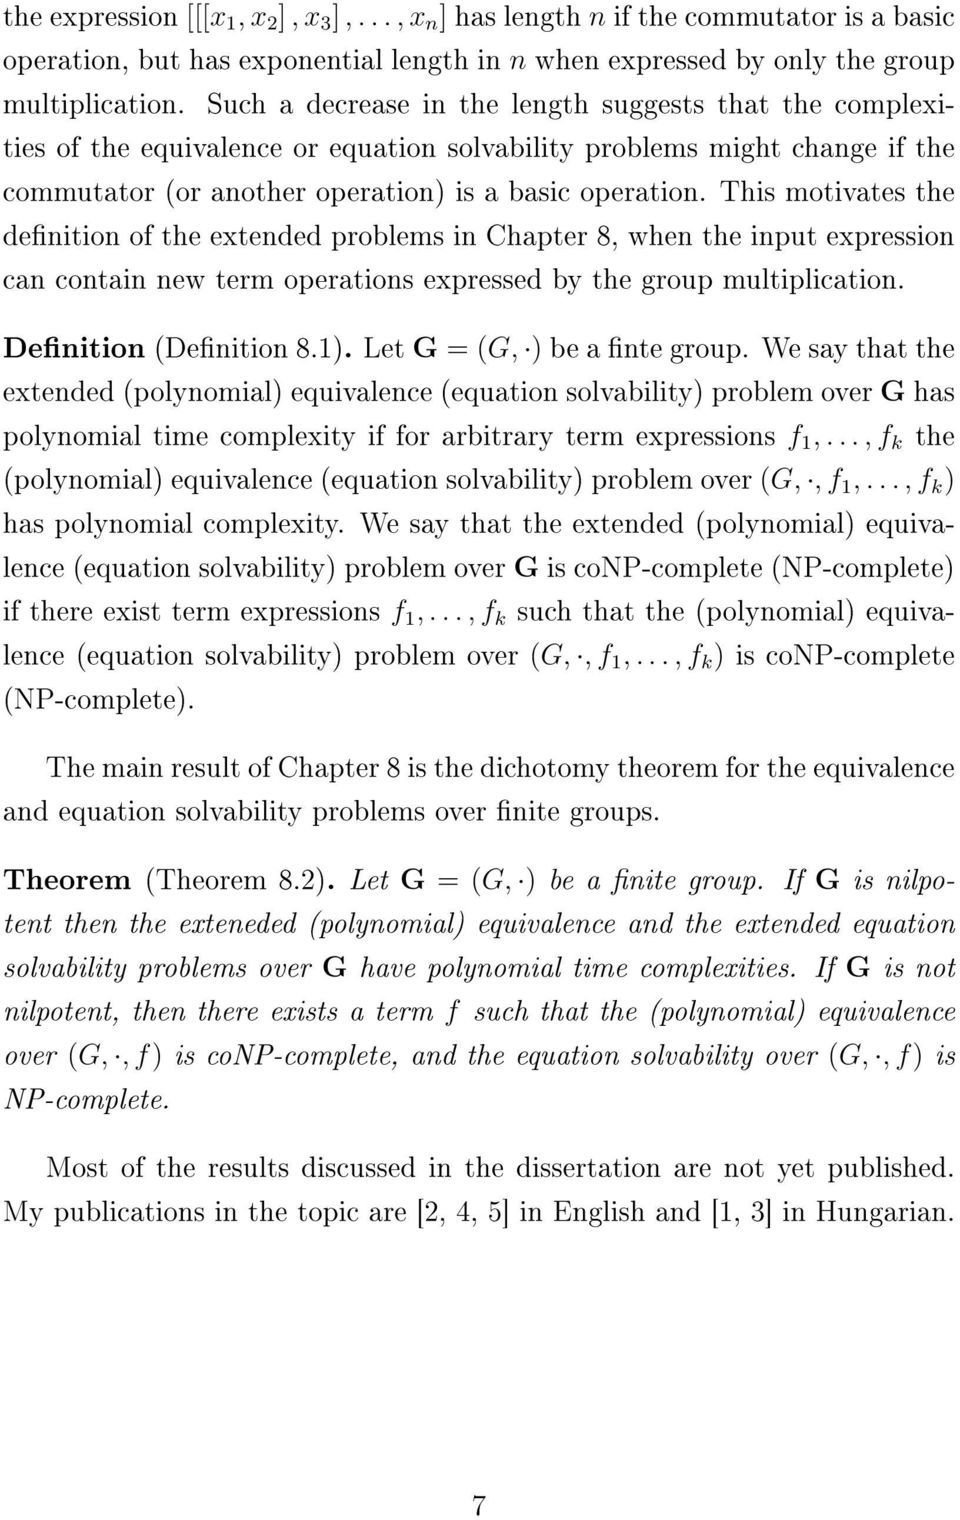 This motivates the denition of the extended problems in Chapter 8, when the input expression can contain new term operations expressed by the group multiplication. Denition (Denition 8.1).